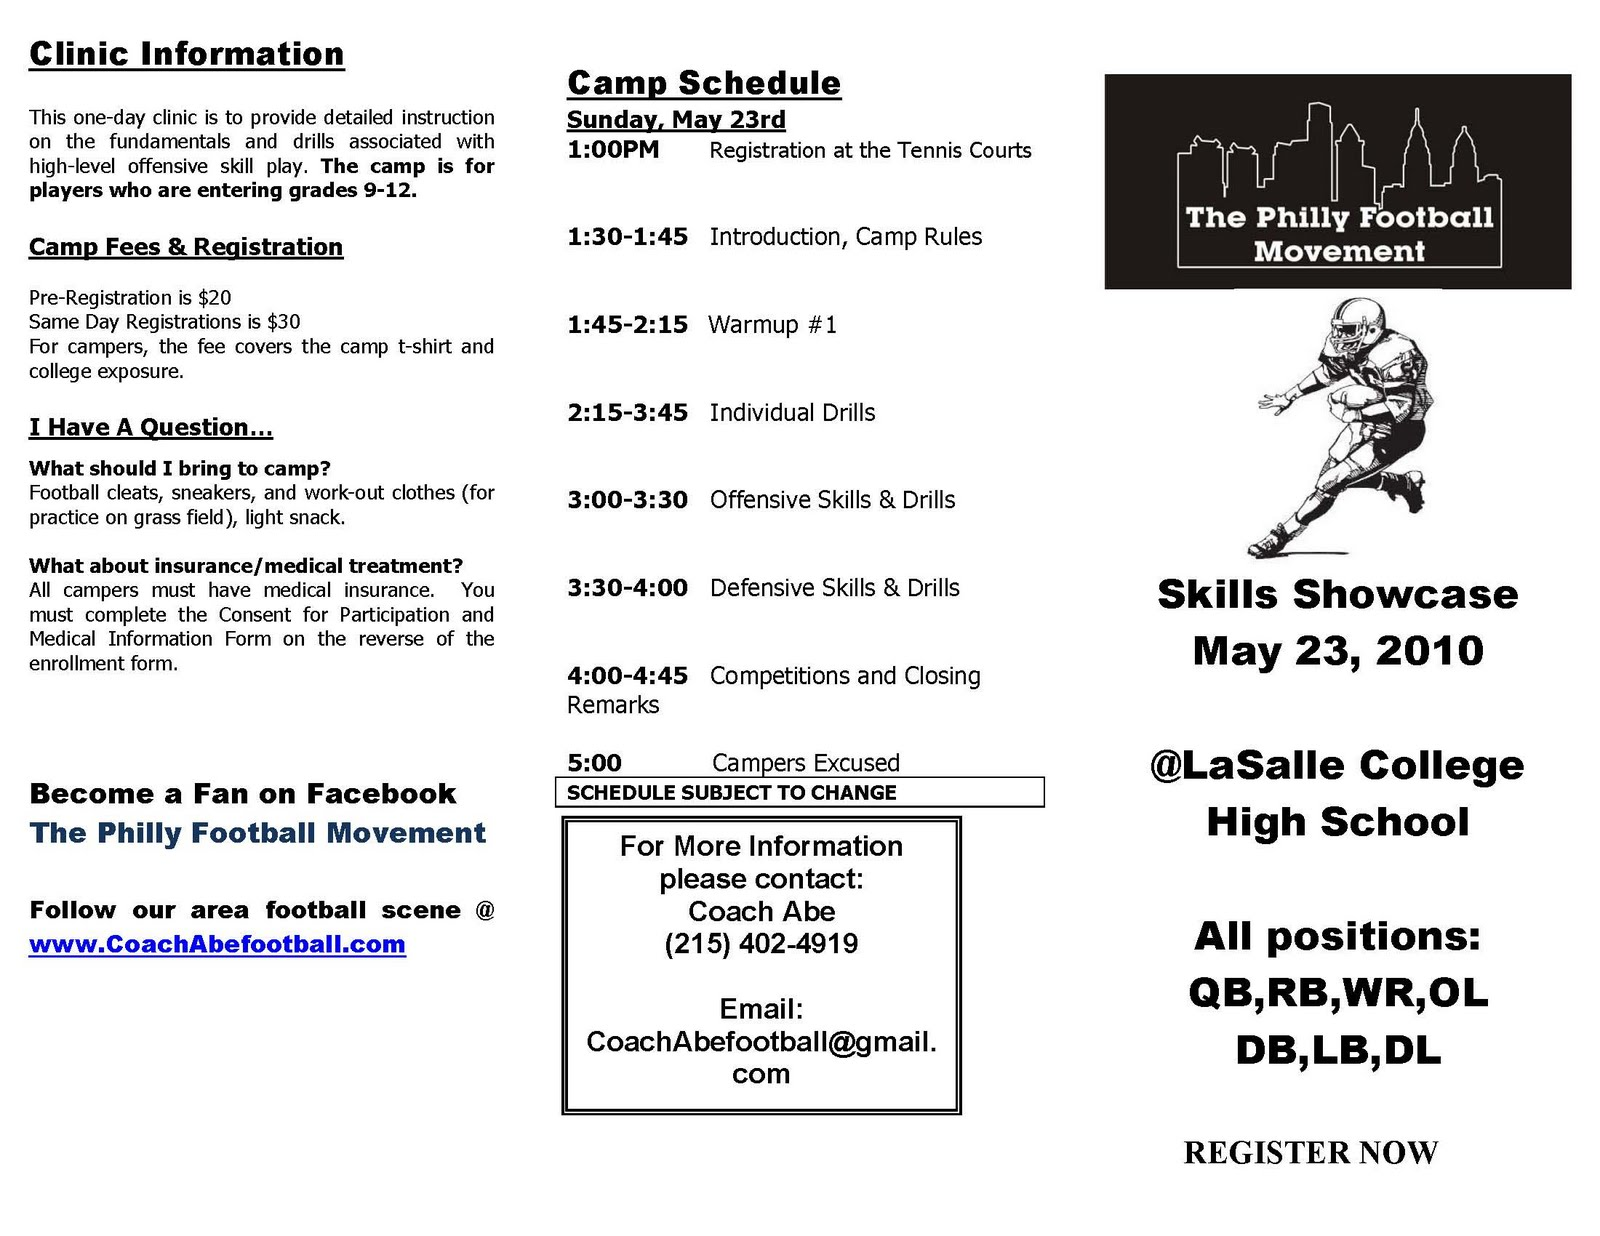 Coach Abe Football May 23rd Skills Showcase Registration Form To